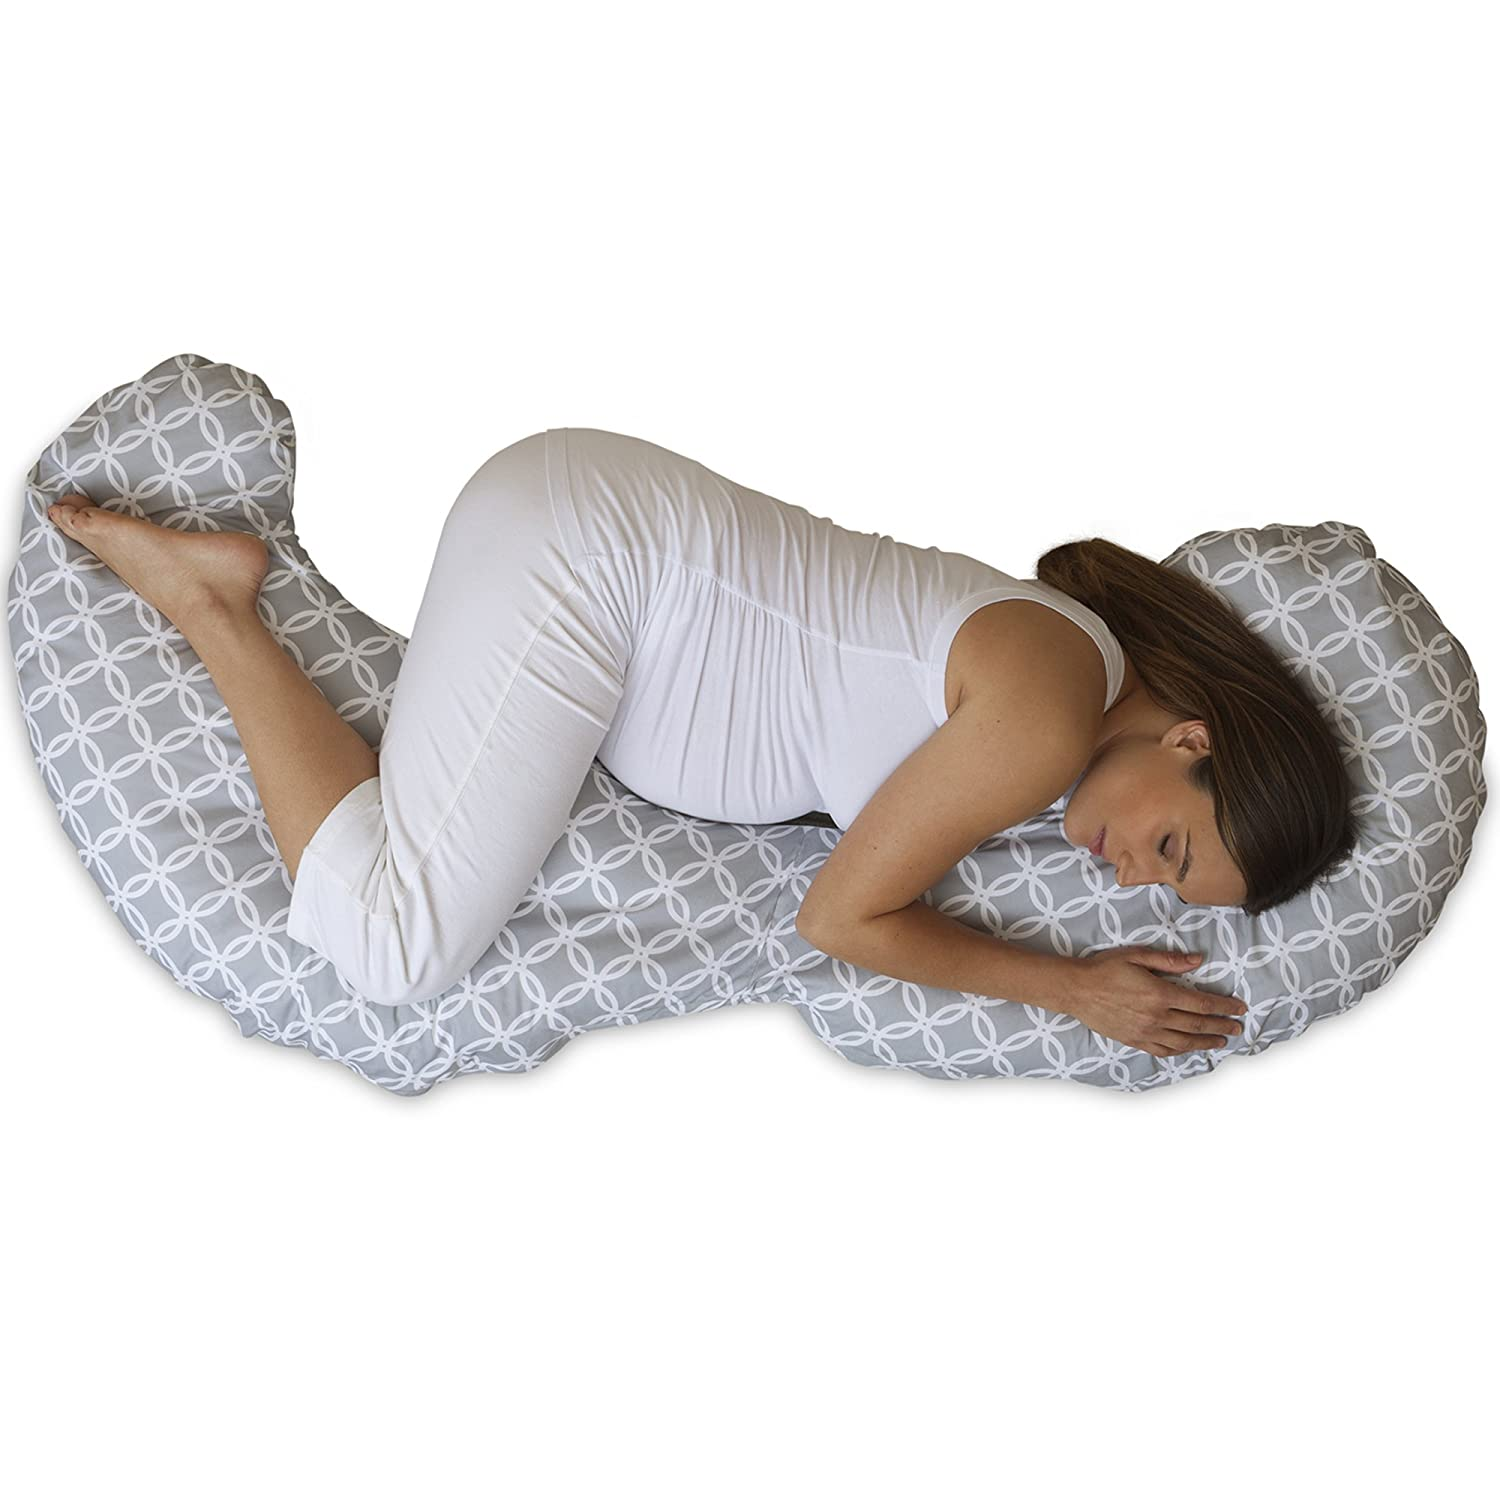 Queen Rose Pregnancy Pillow is widely considered the most popular total body pillow for pregnant women through every stage of the pregnancy. This article reviews the total body pillow.